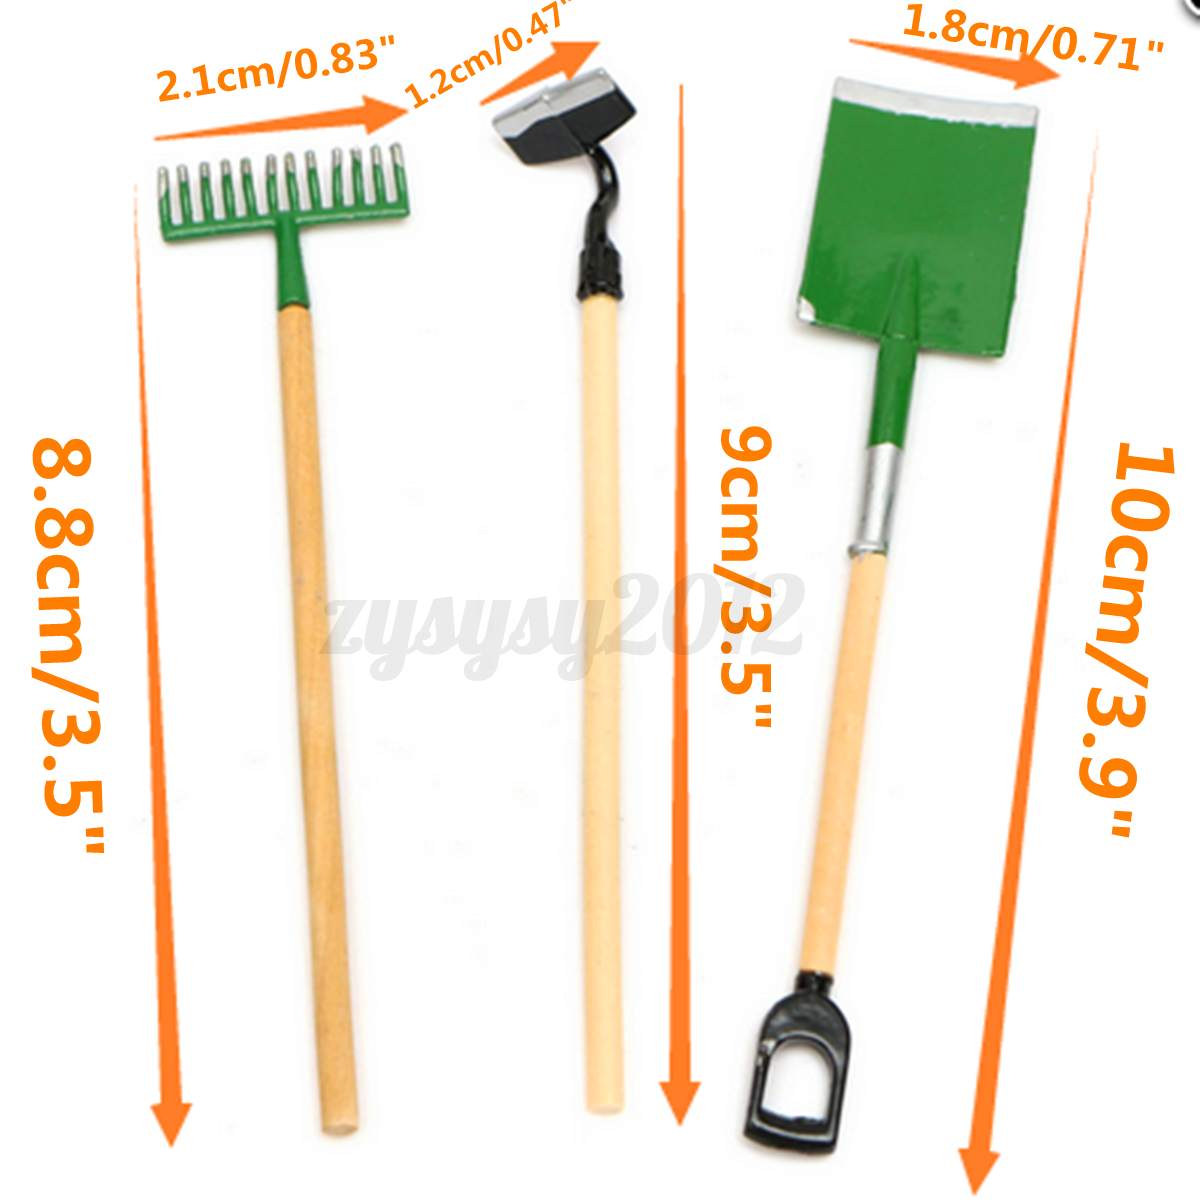 1 12 scale dolls house miniature garden accessory tools for Small garden tools set of 6